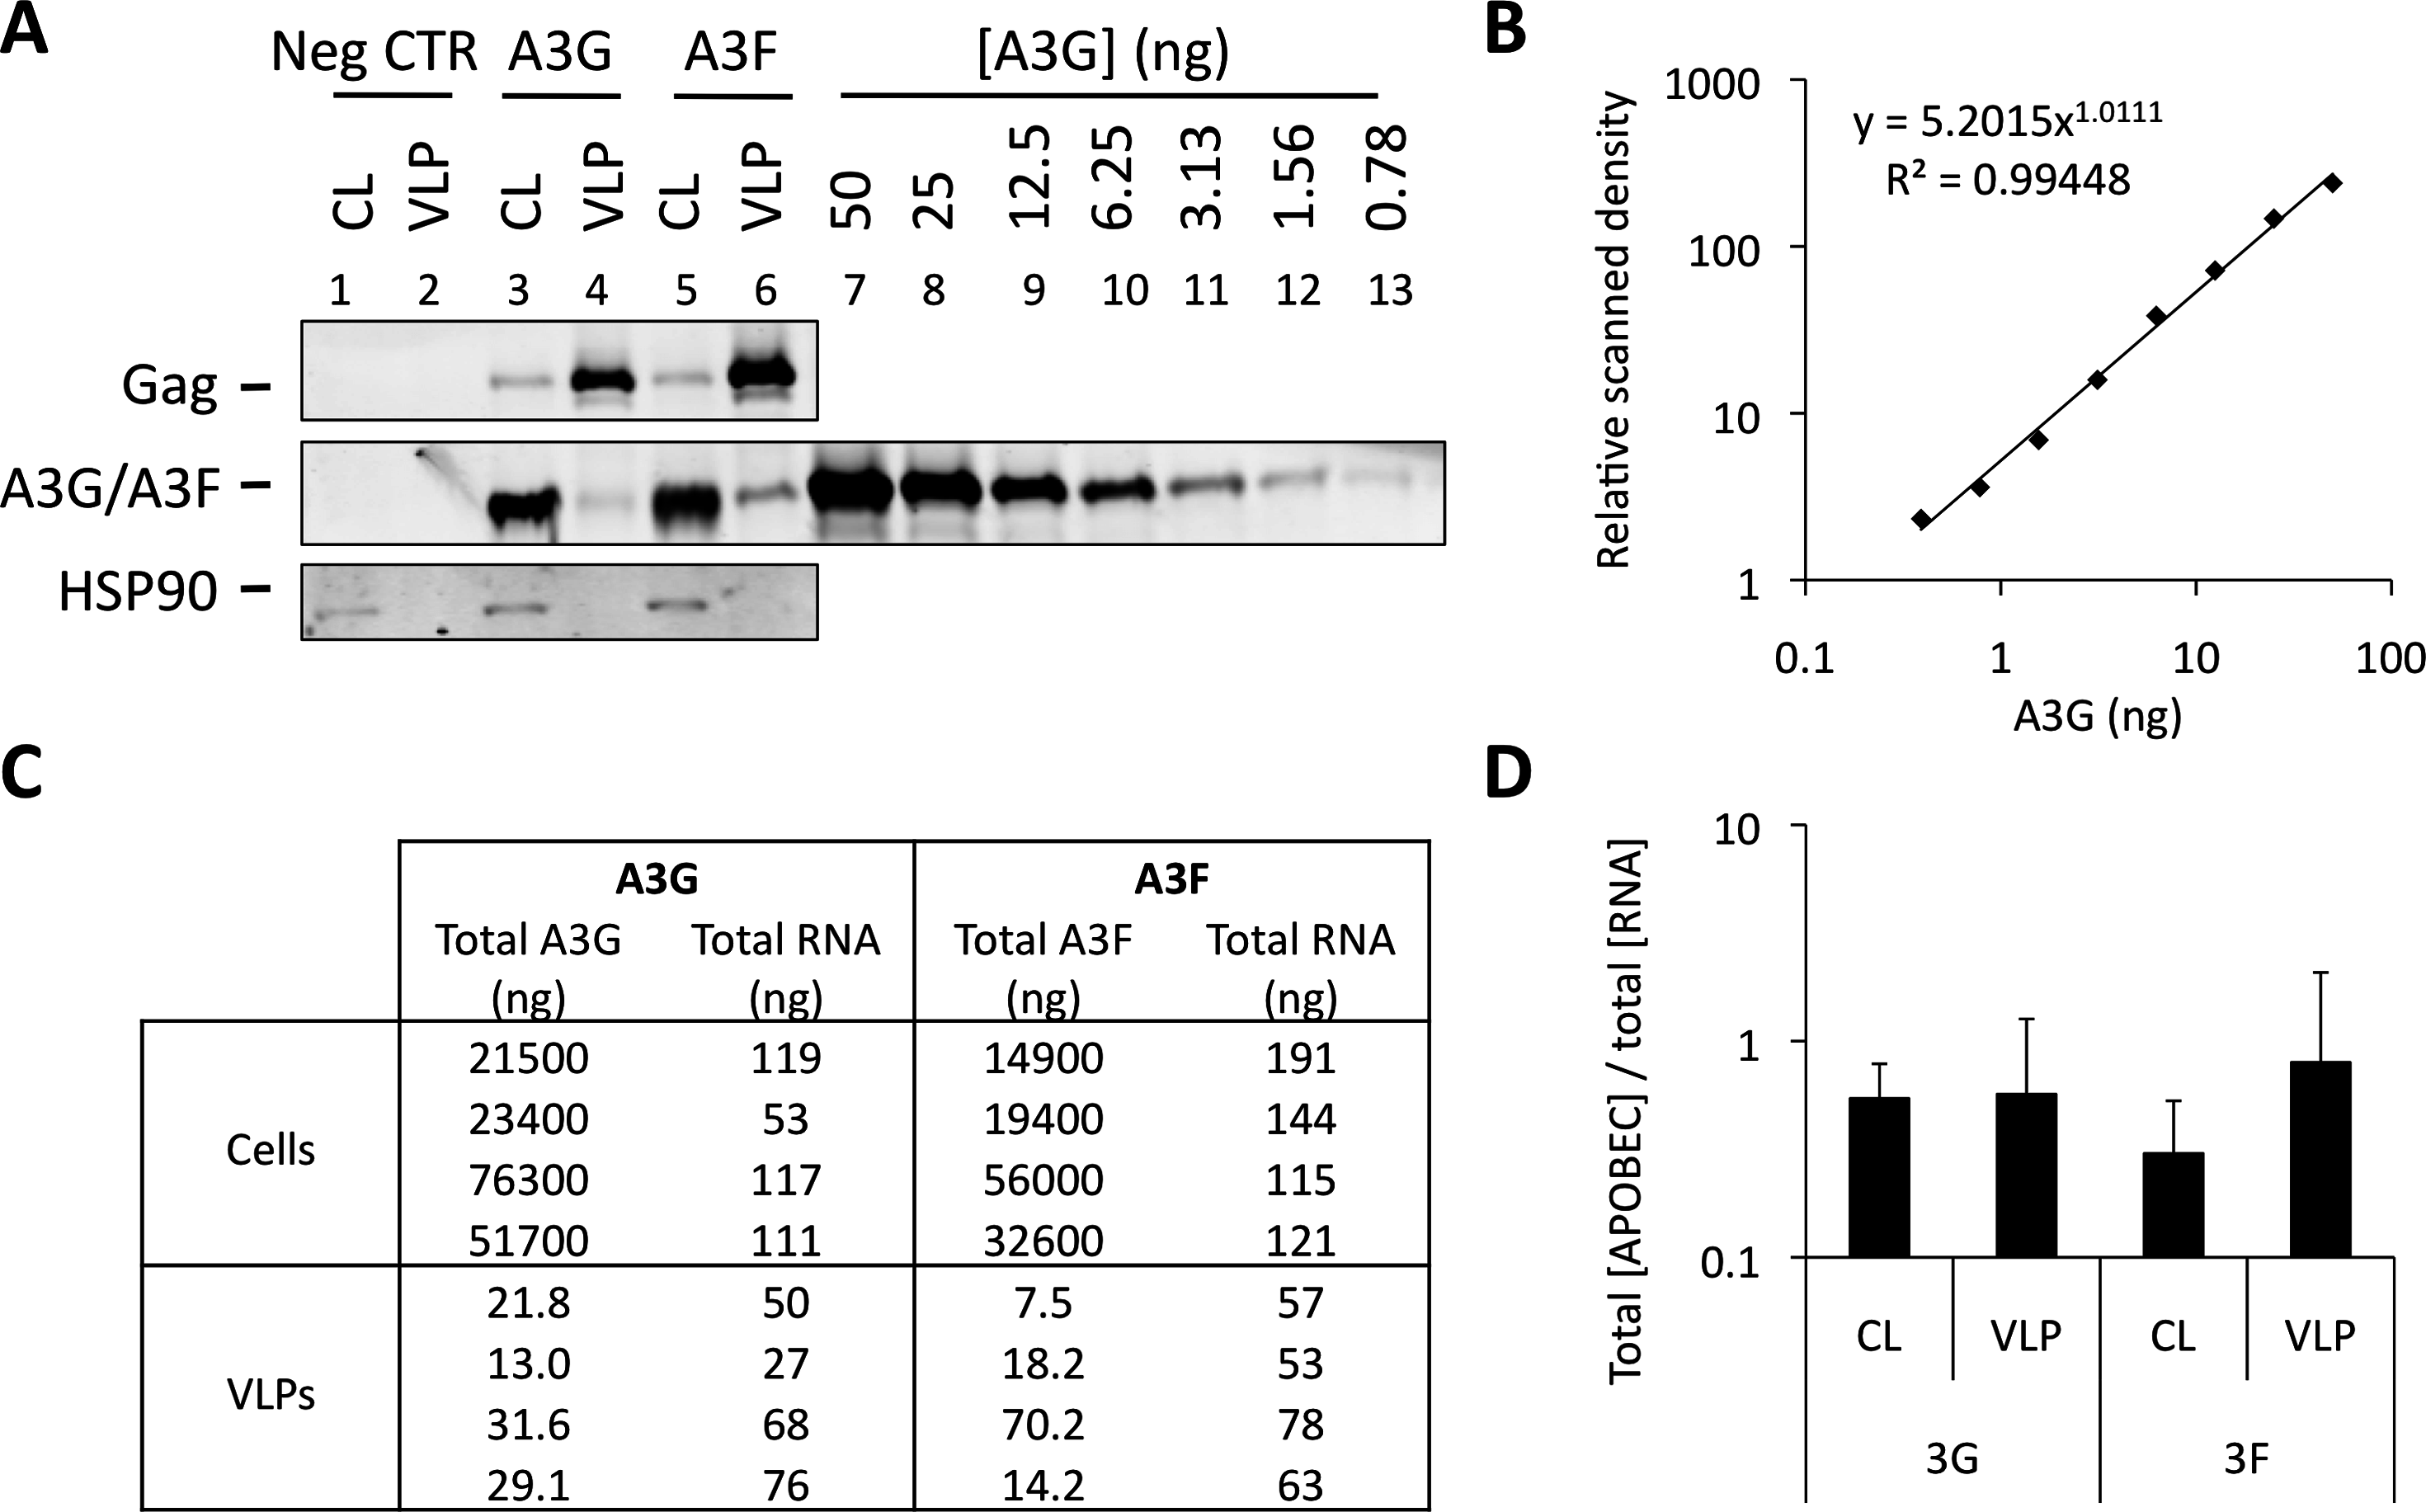 A3G and A3F concentrations are similarly distributed between cells and VLPs by RNA. (A)